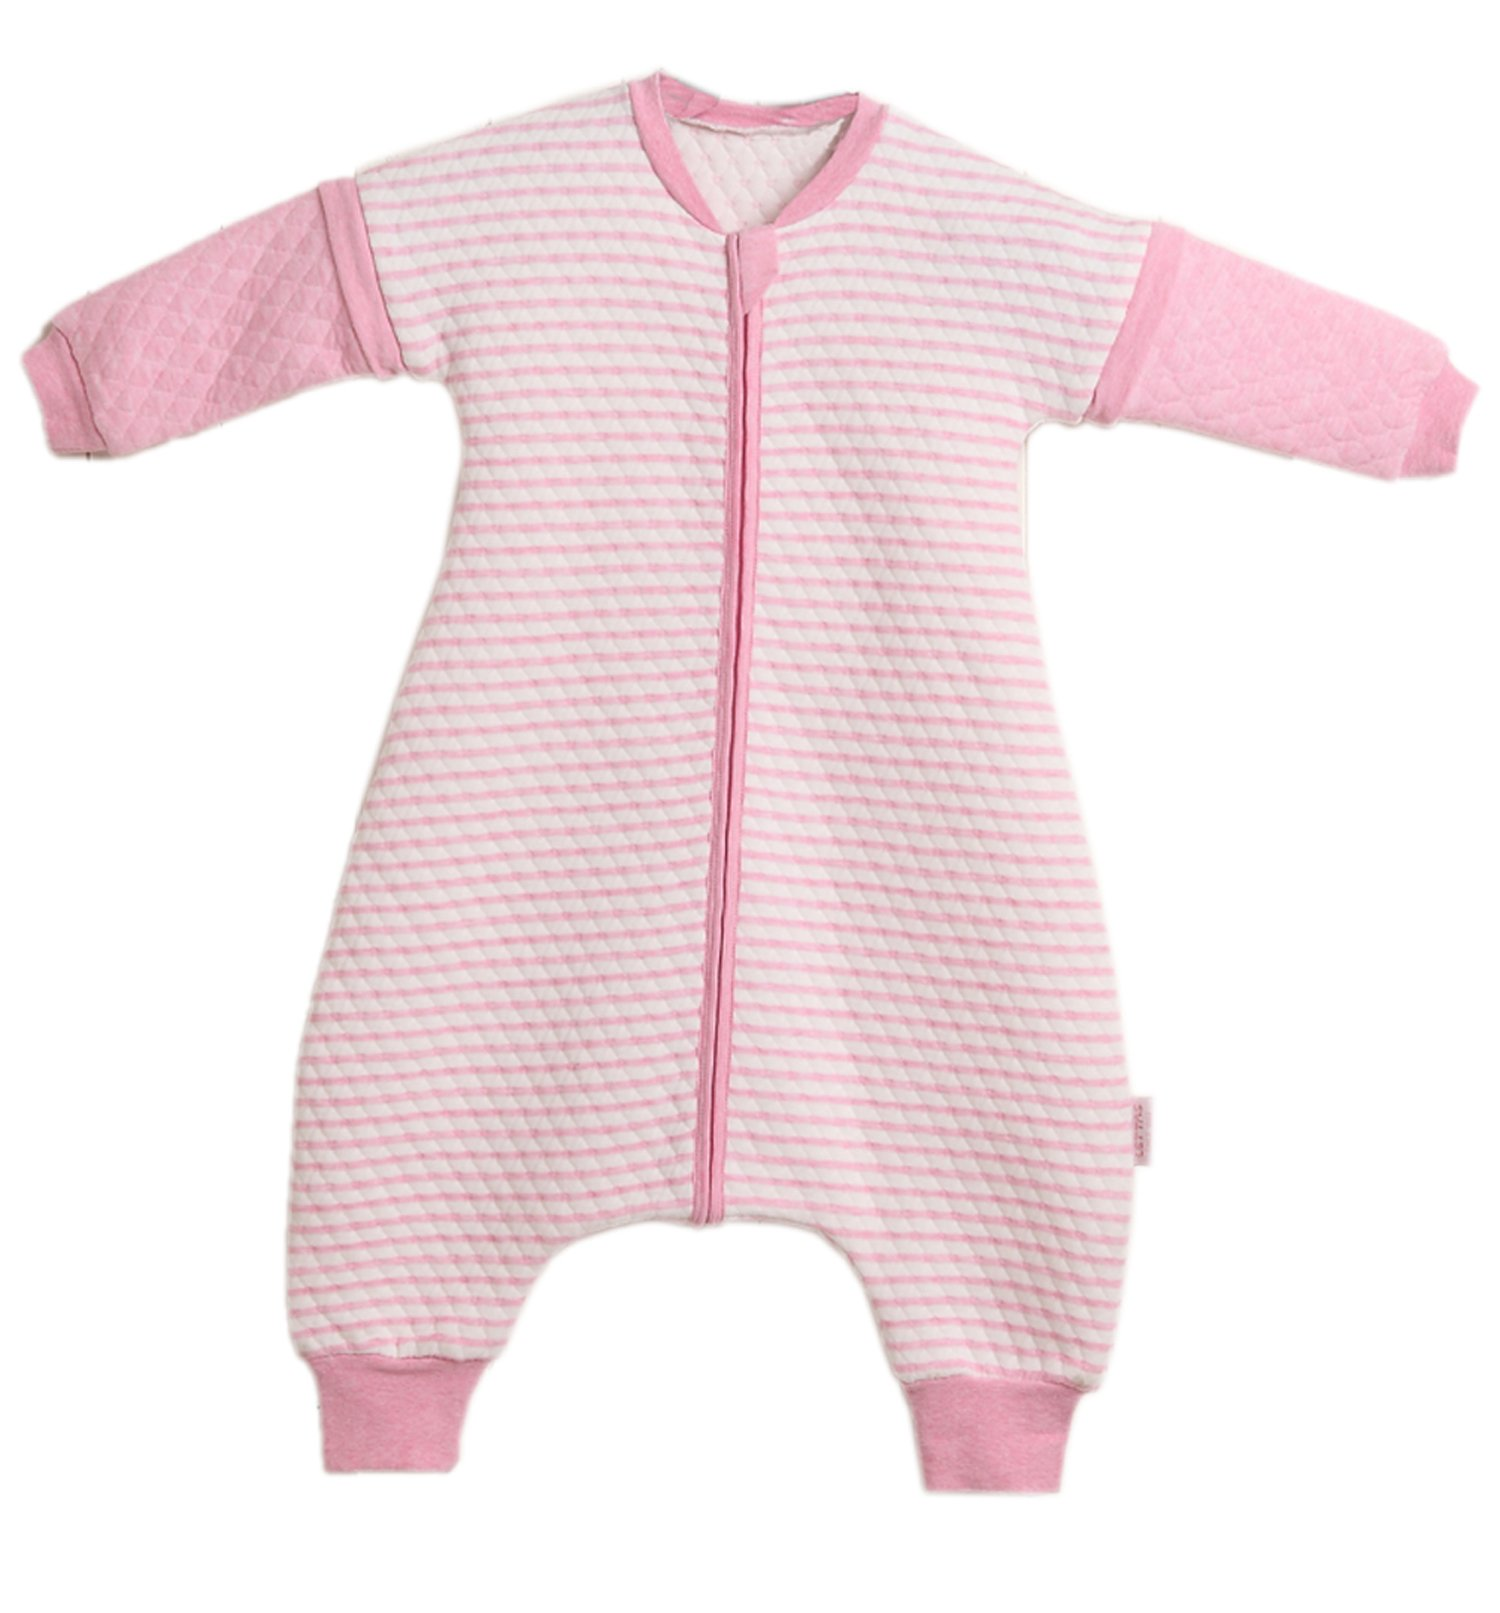 LETTAS Baby Quited Cotton Stripe Detachable Sleeve Sleeping Bag with Feet (M(12-24 Months), Pink)